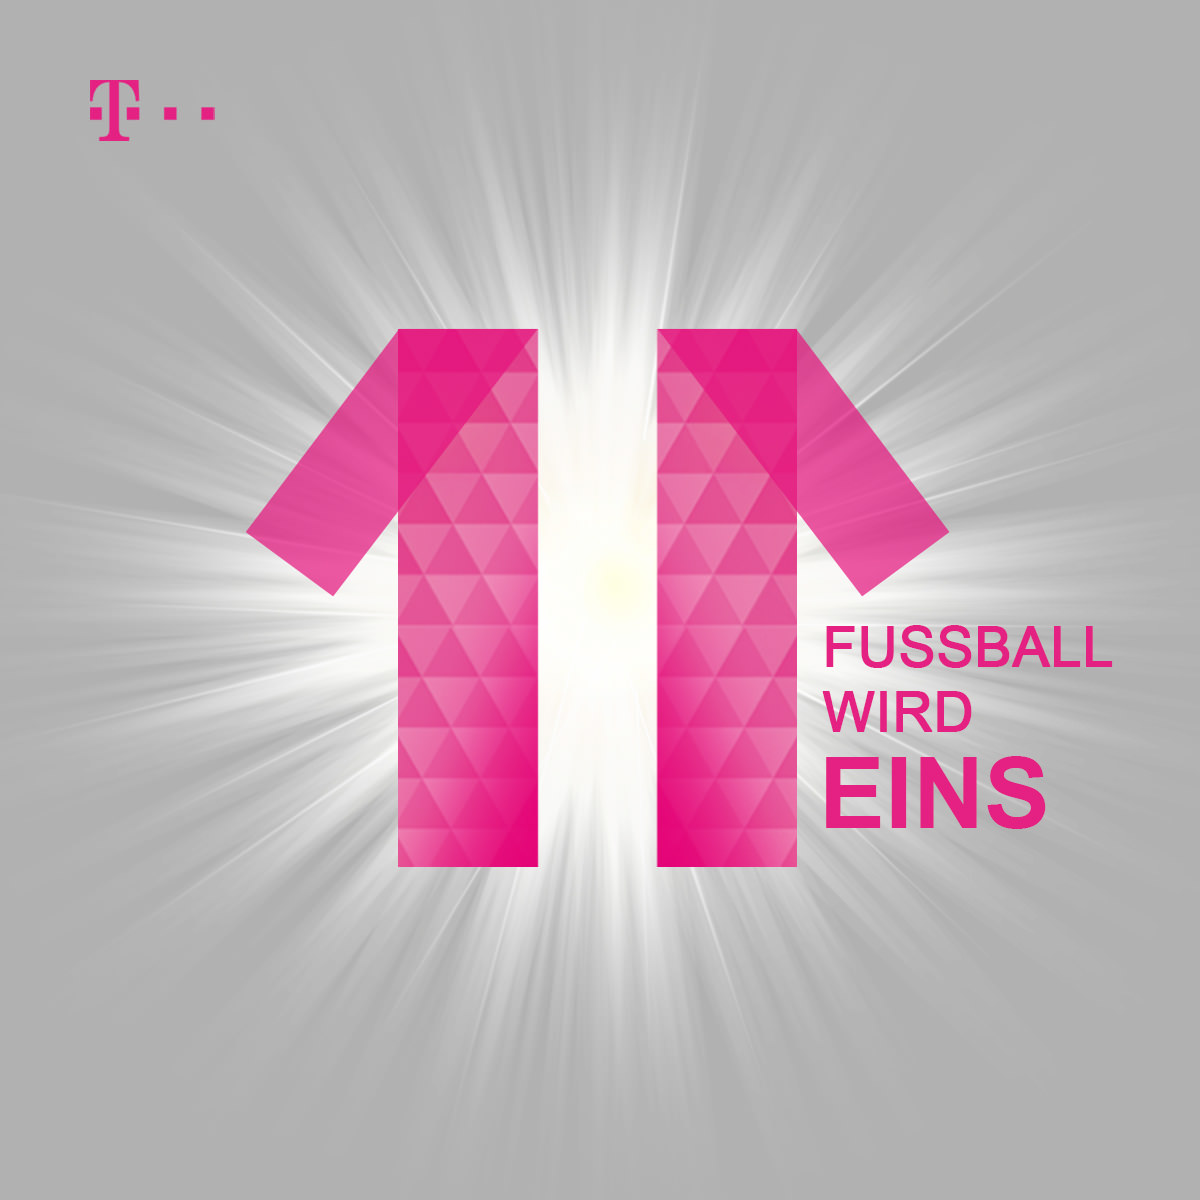 Deutsche Telekom Design